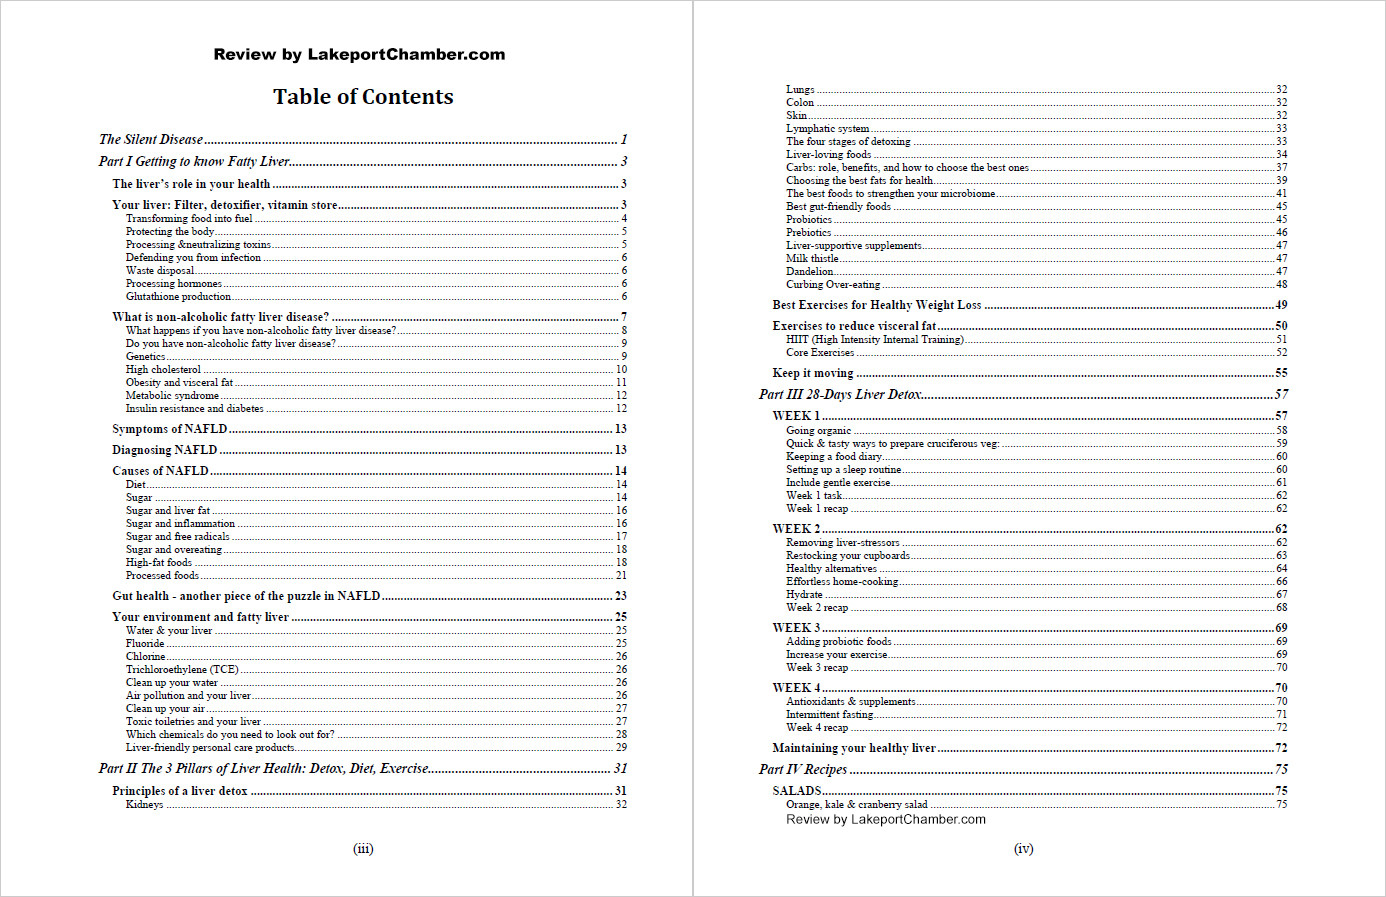 The Non Alcoholic Fatty Liver Strategy Table of Contents